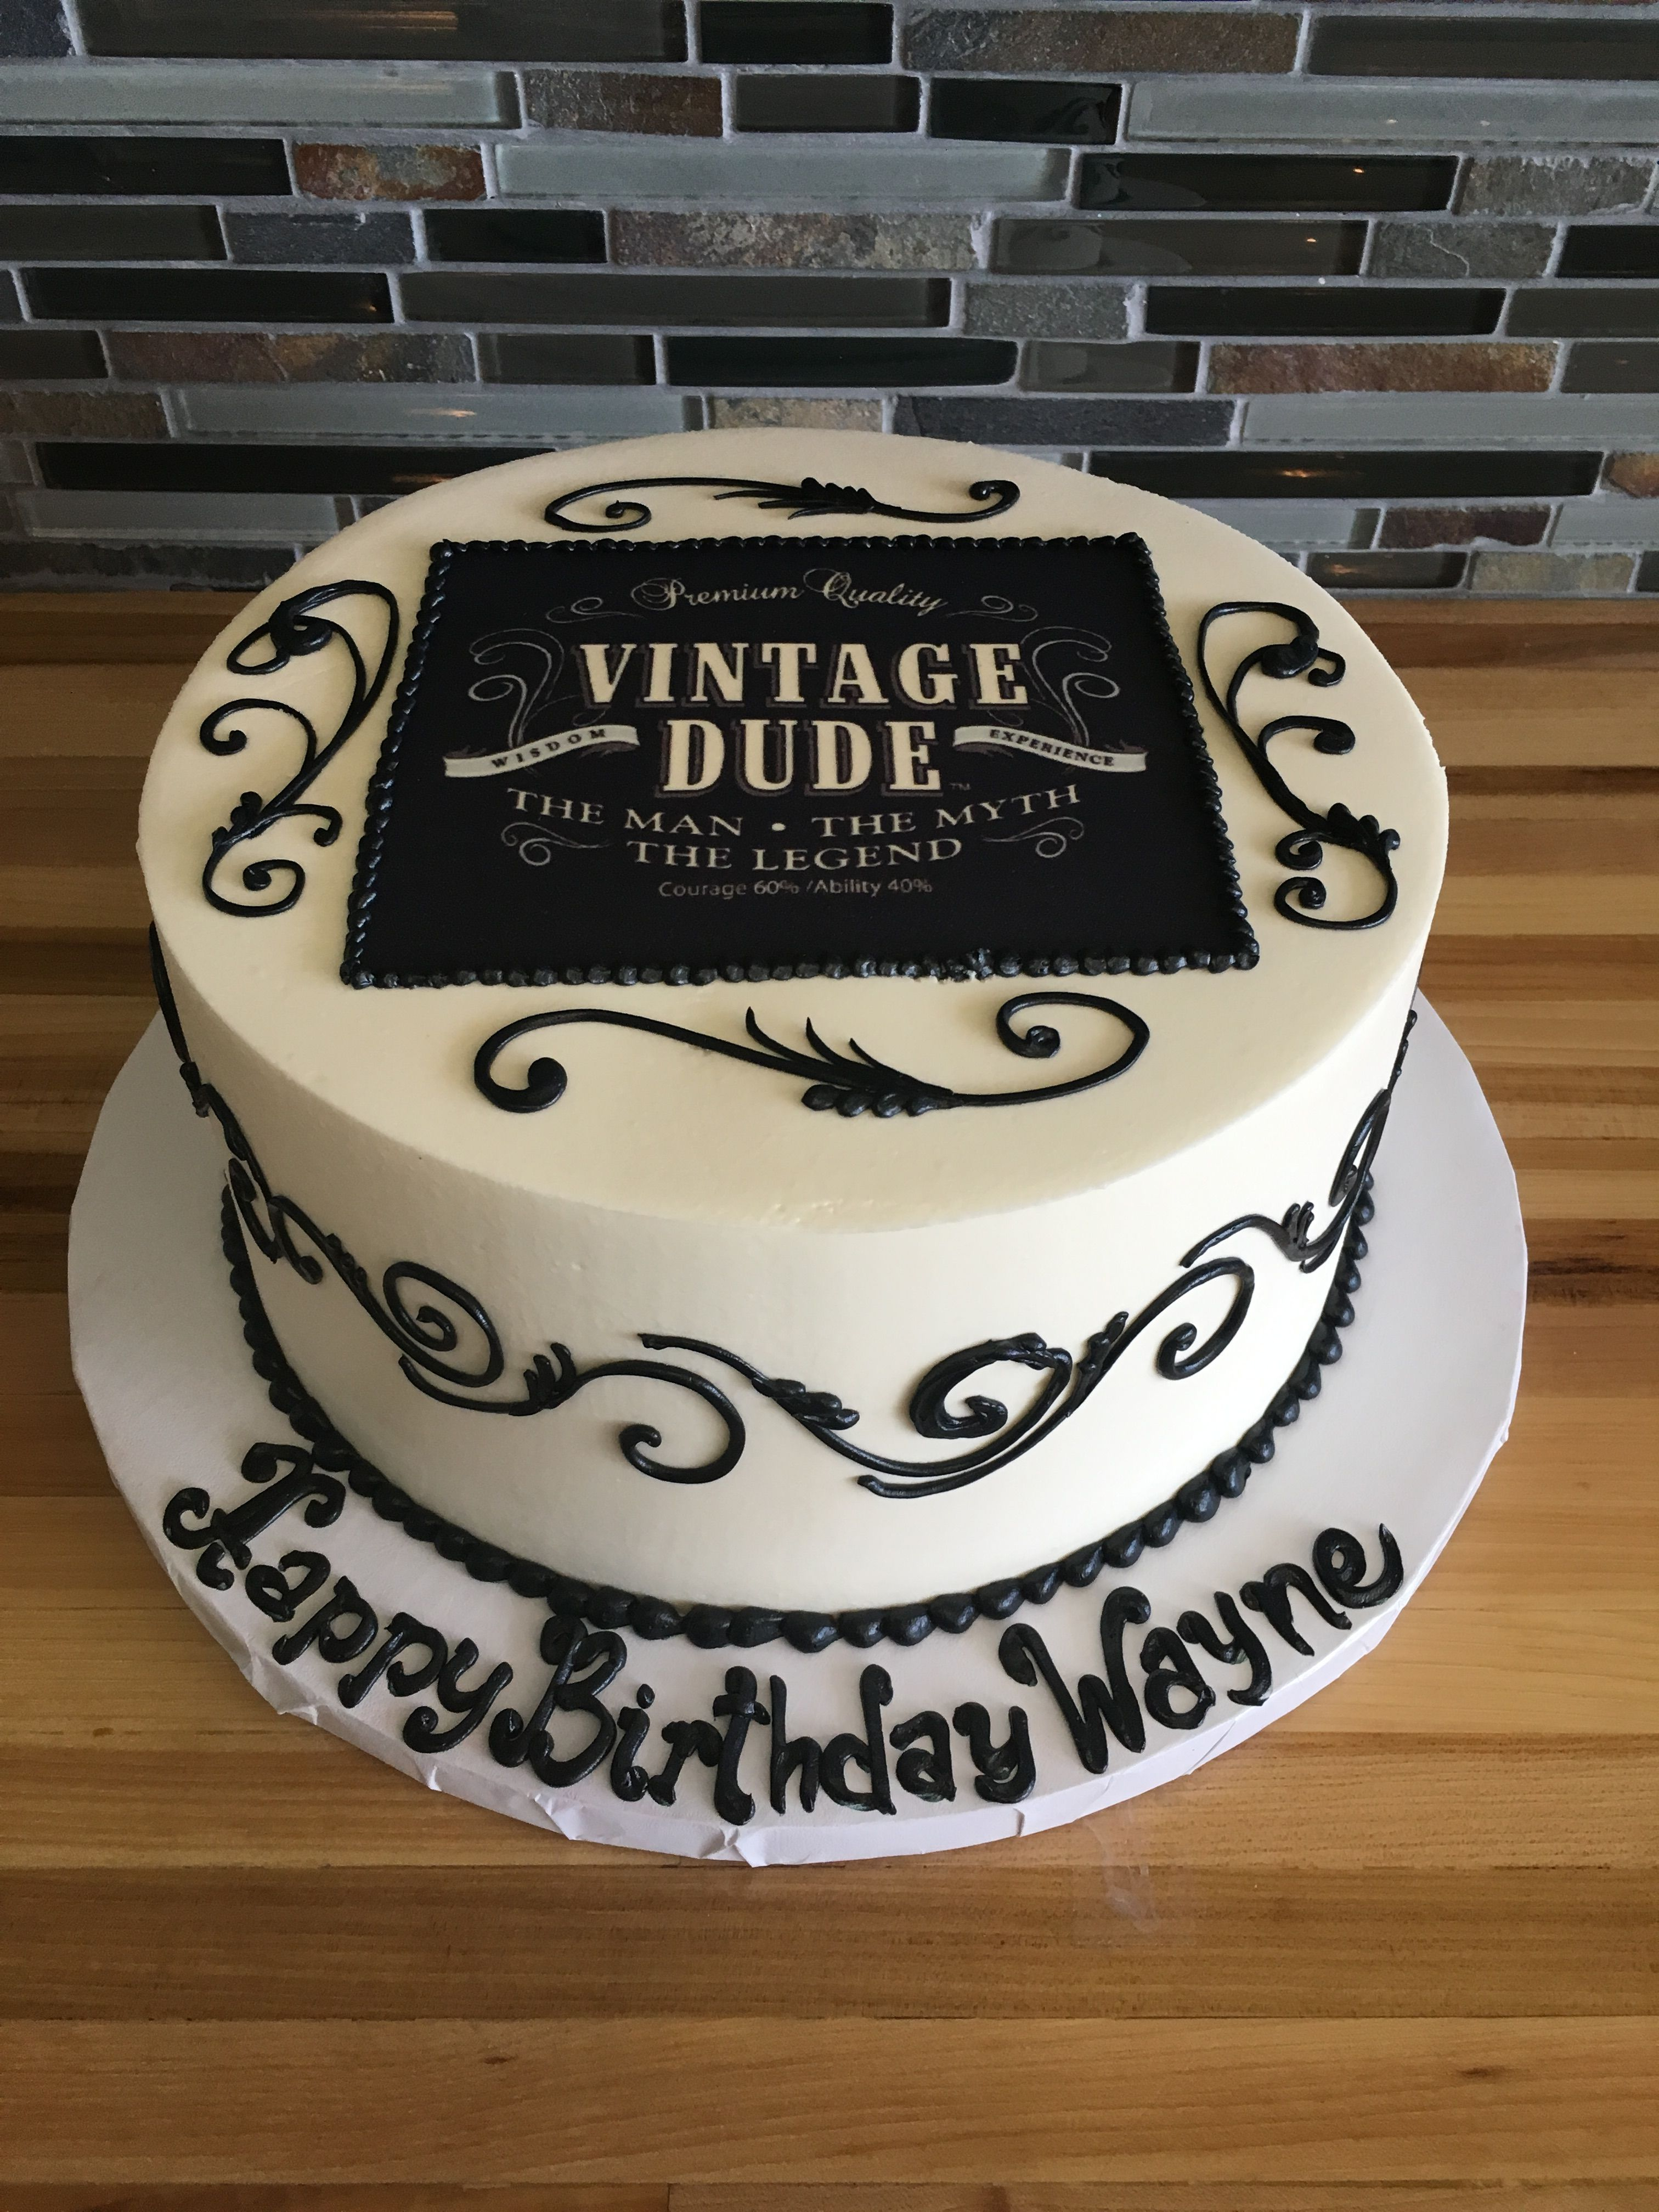 Vintage Dude Birthday Cake